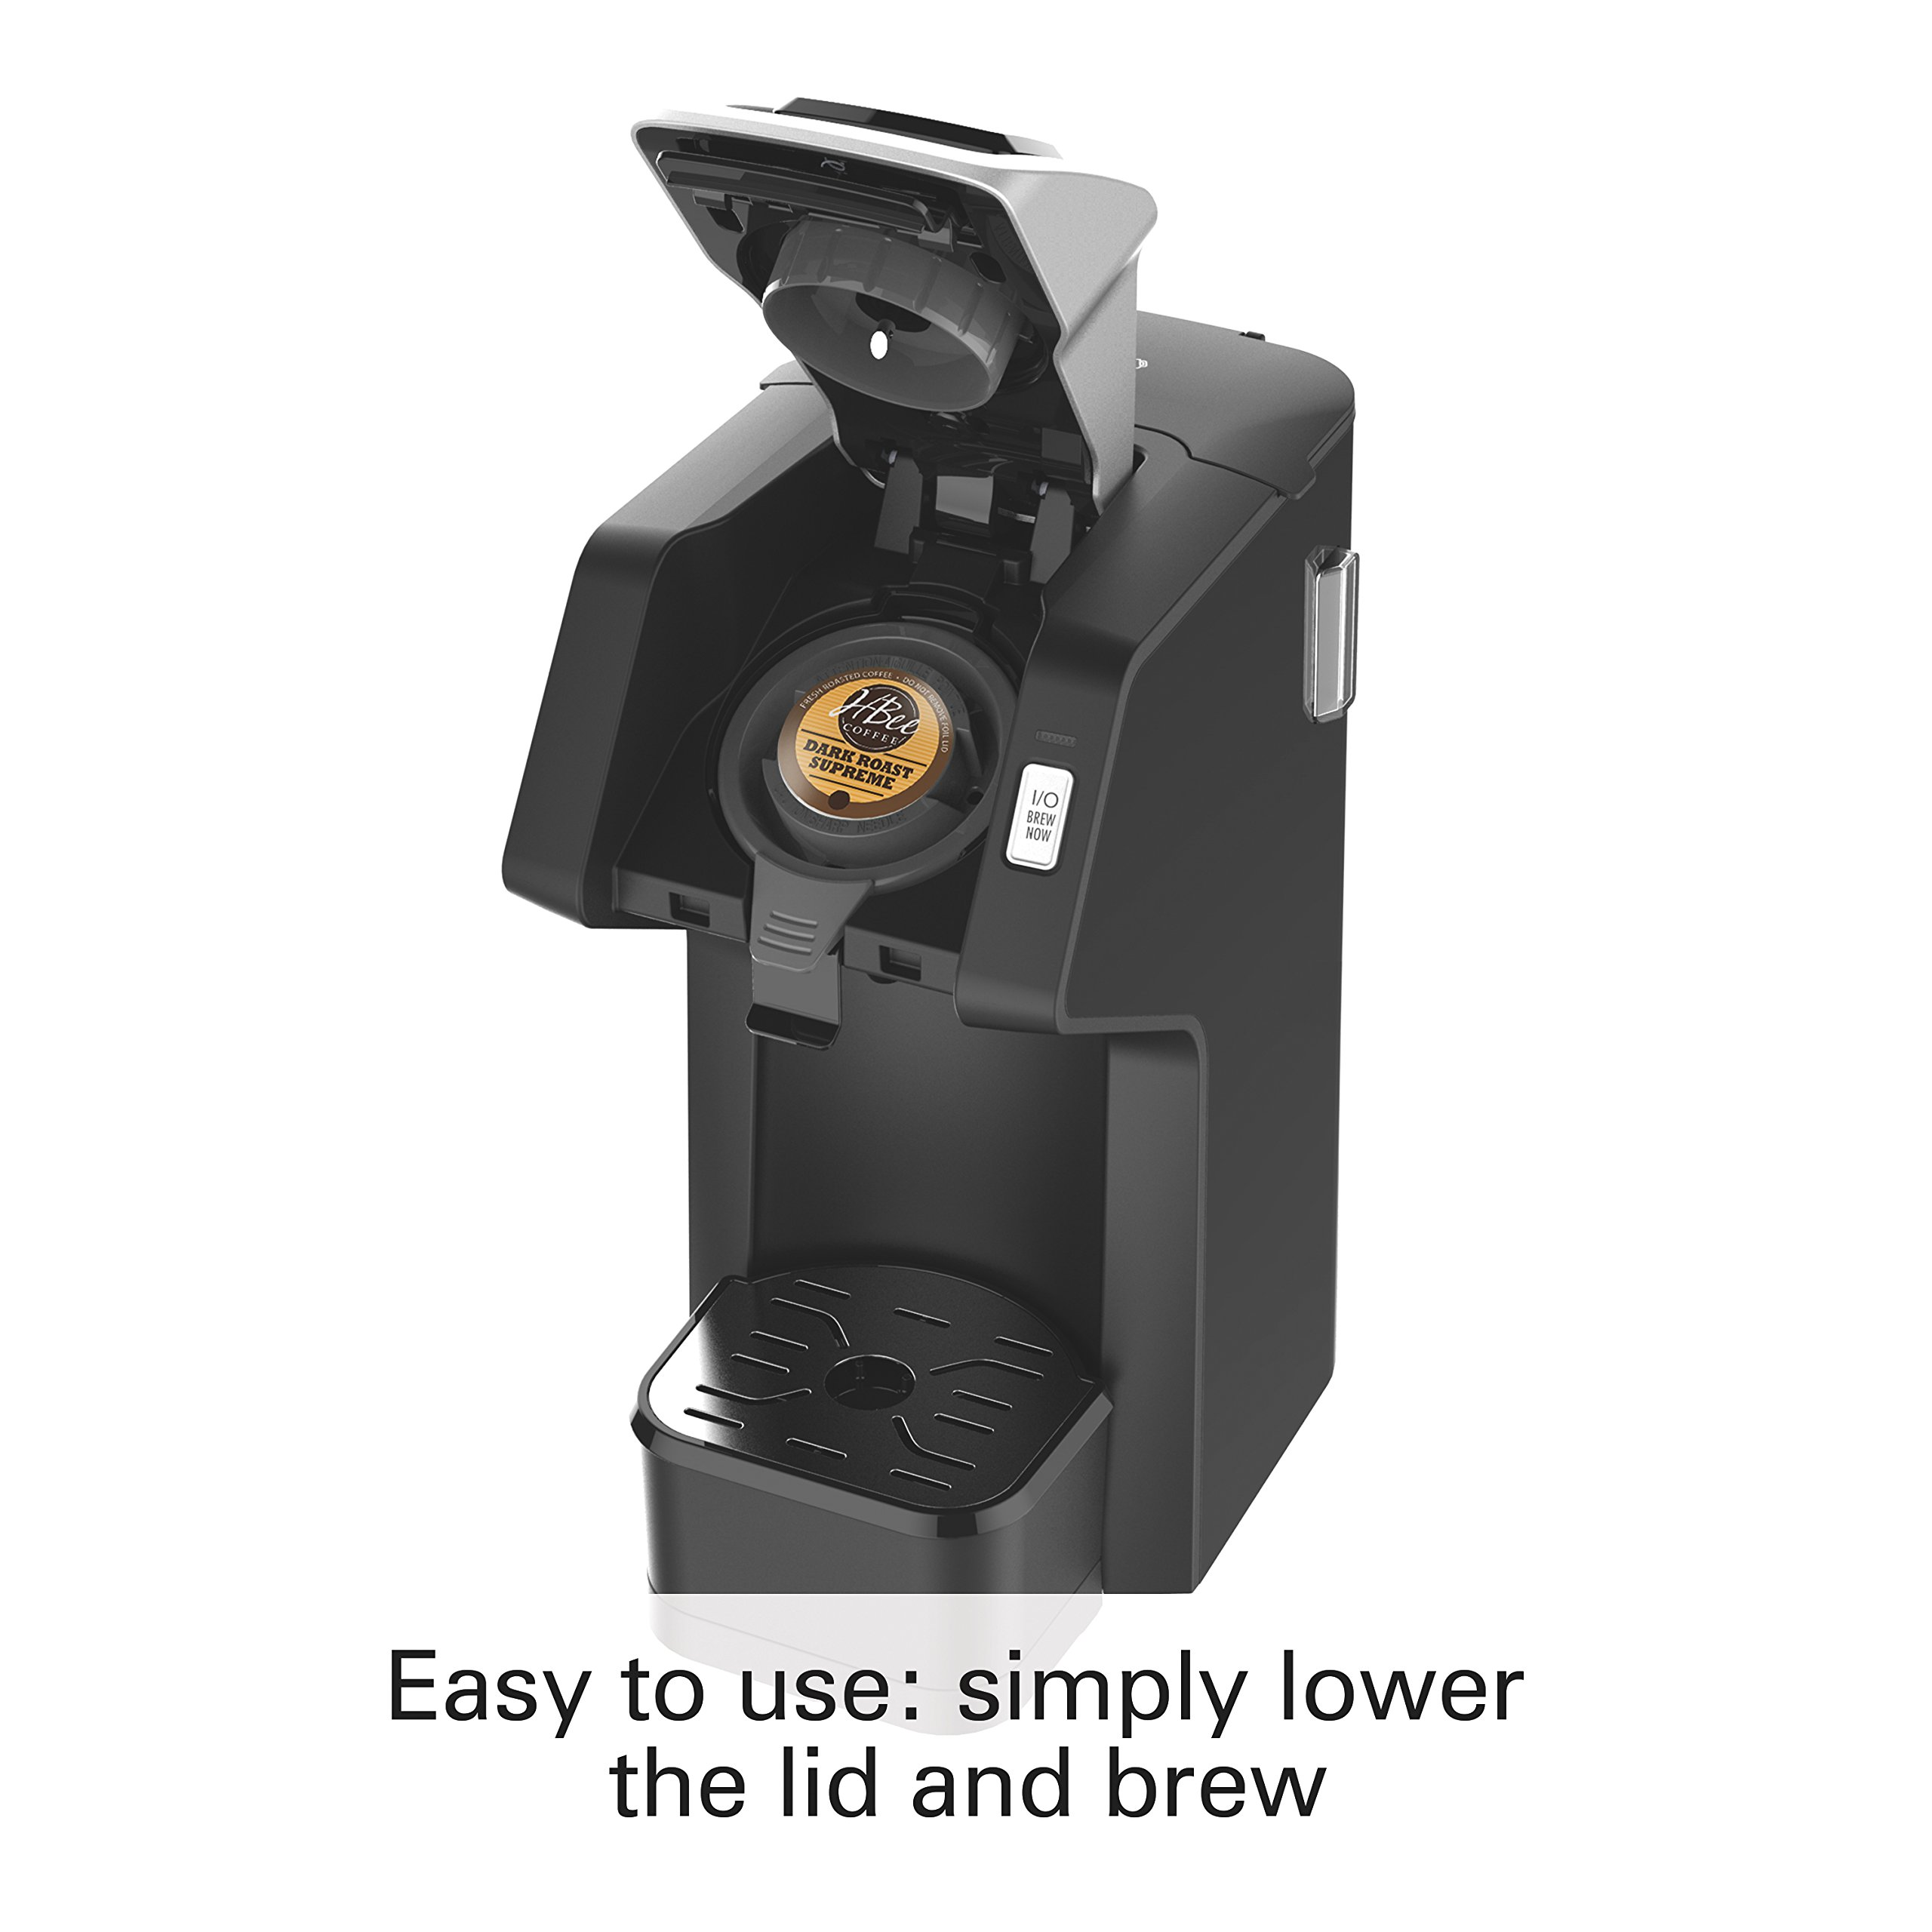 Hamilton Beach (49974) Single Serve Coffee Maker,Compatible withK-Cup Packs and Ground Coffee, Flexbrew, Black by Hamilton Beach (Image #3)